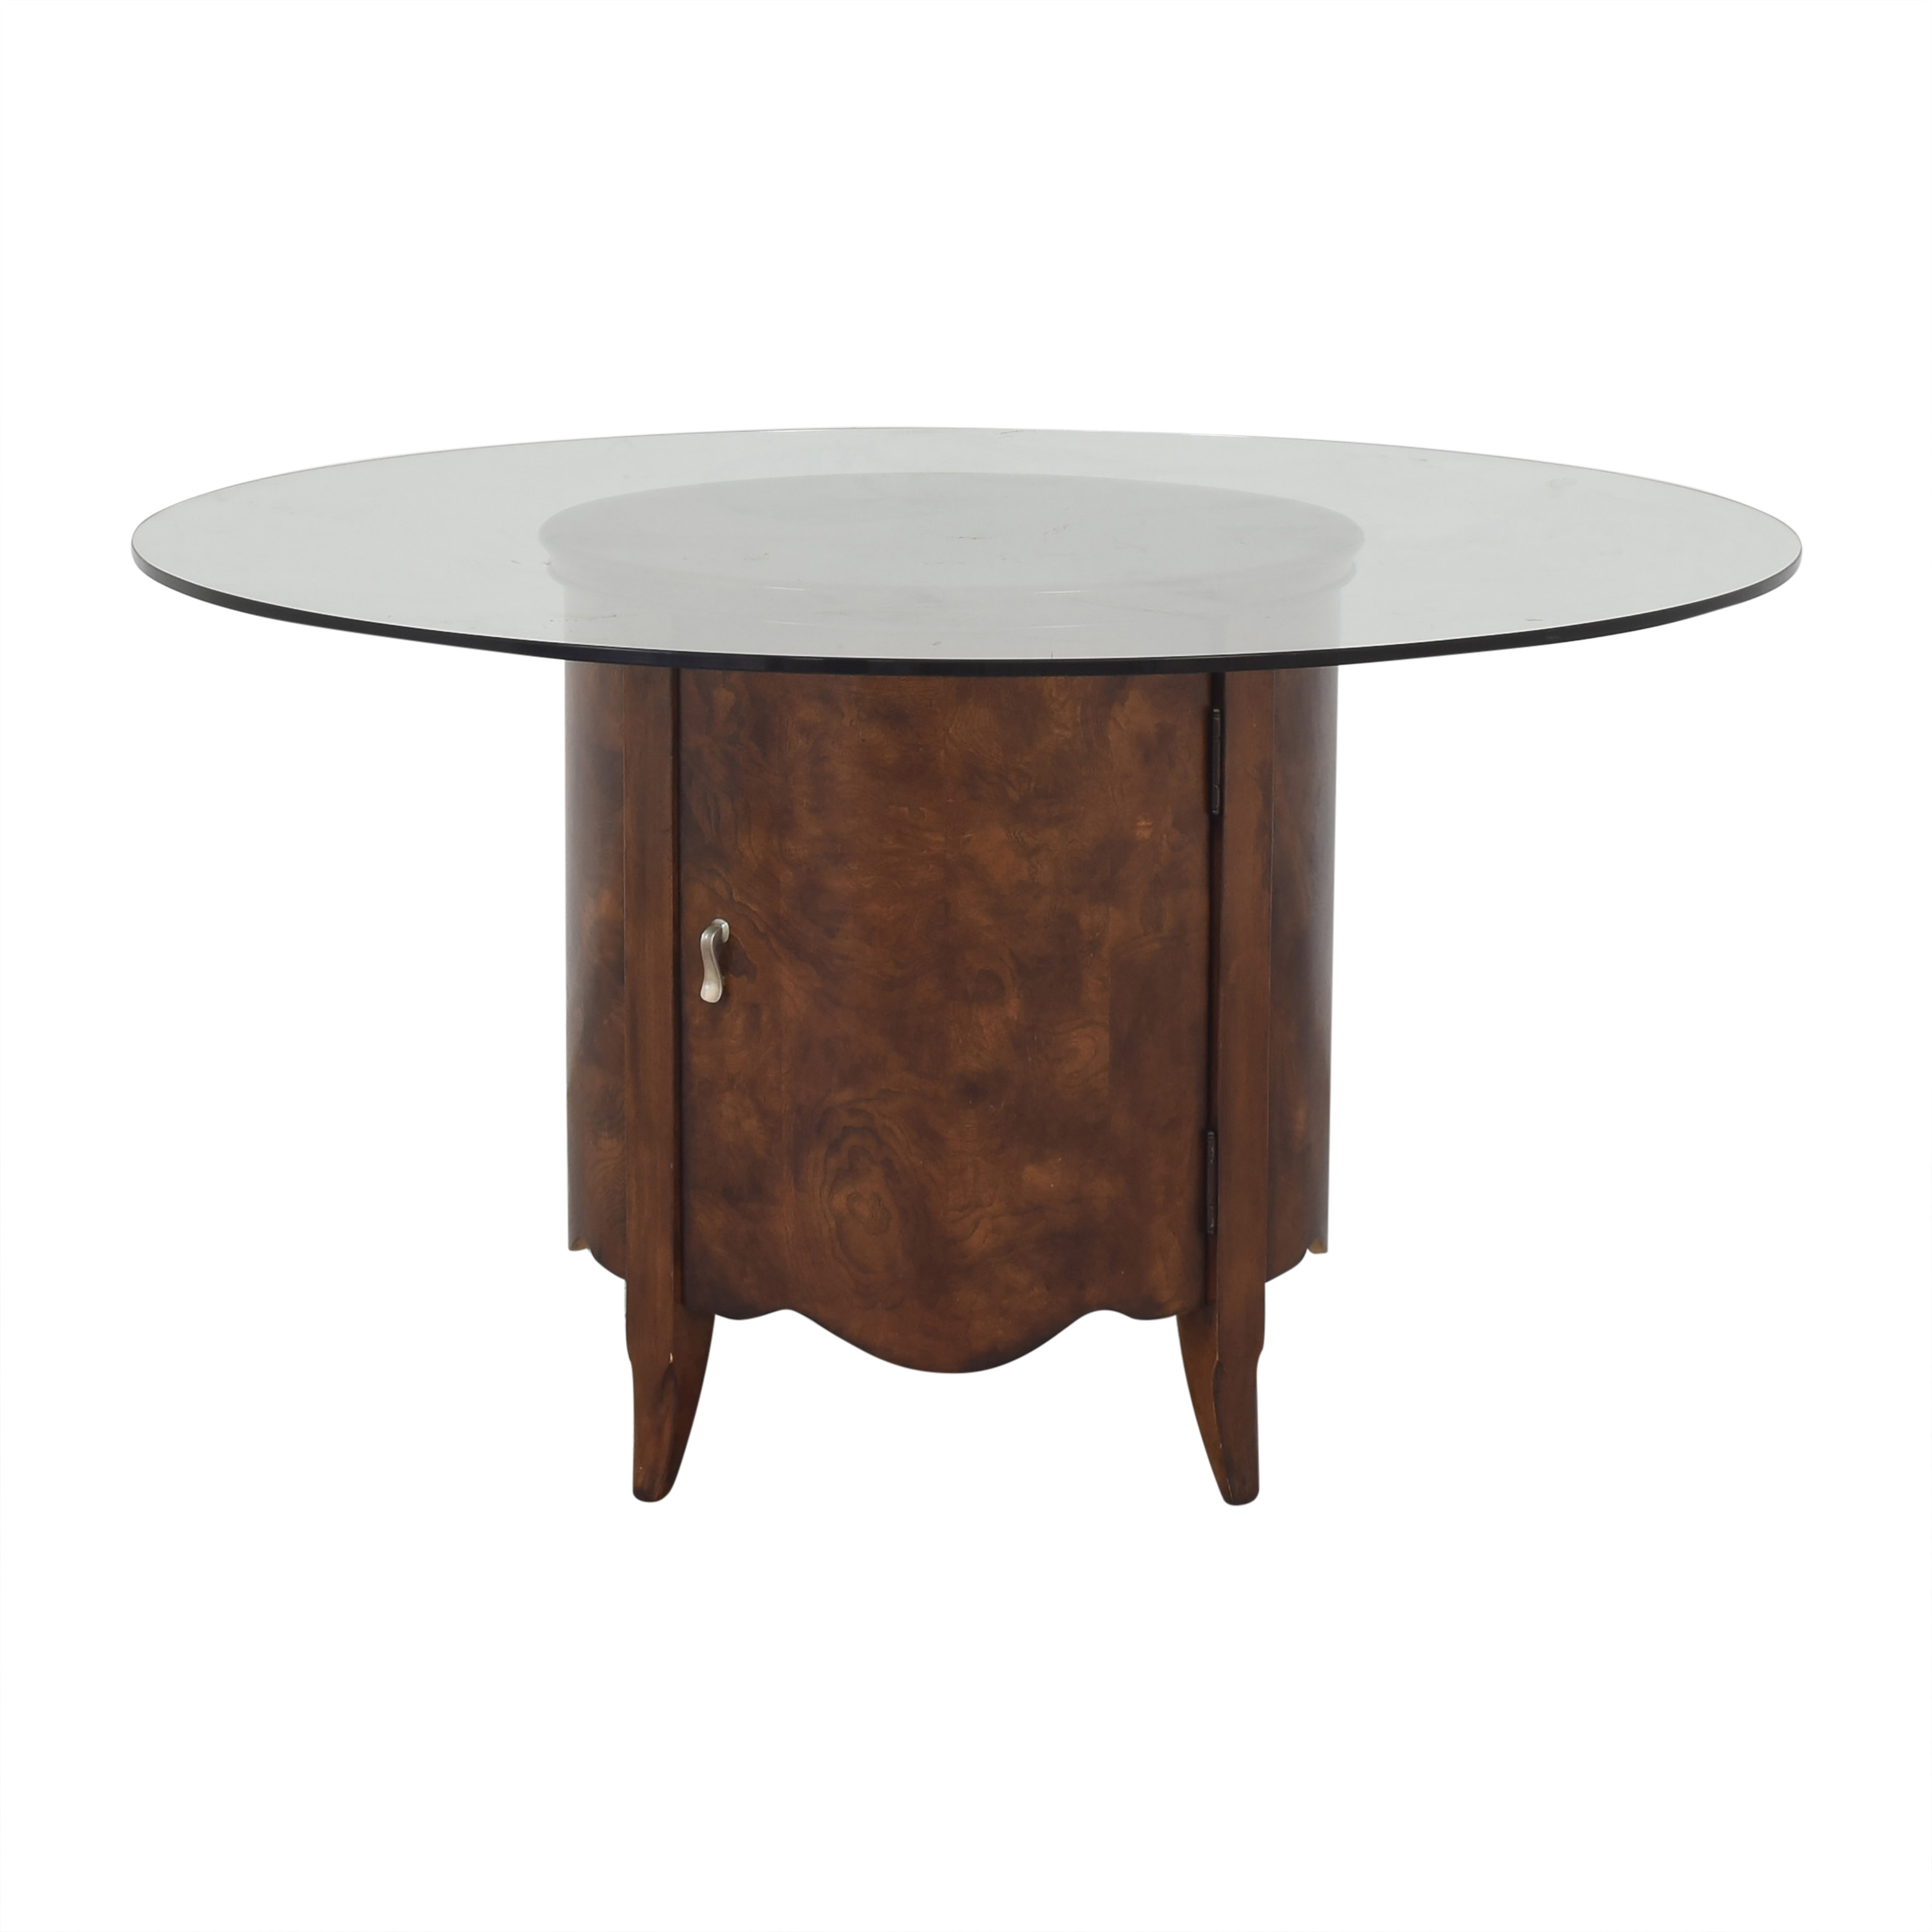 shop Raymour & Flanigan Raymour & Flanigan Round Dining Table online